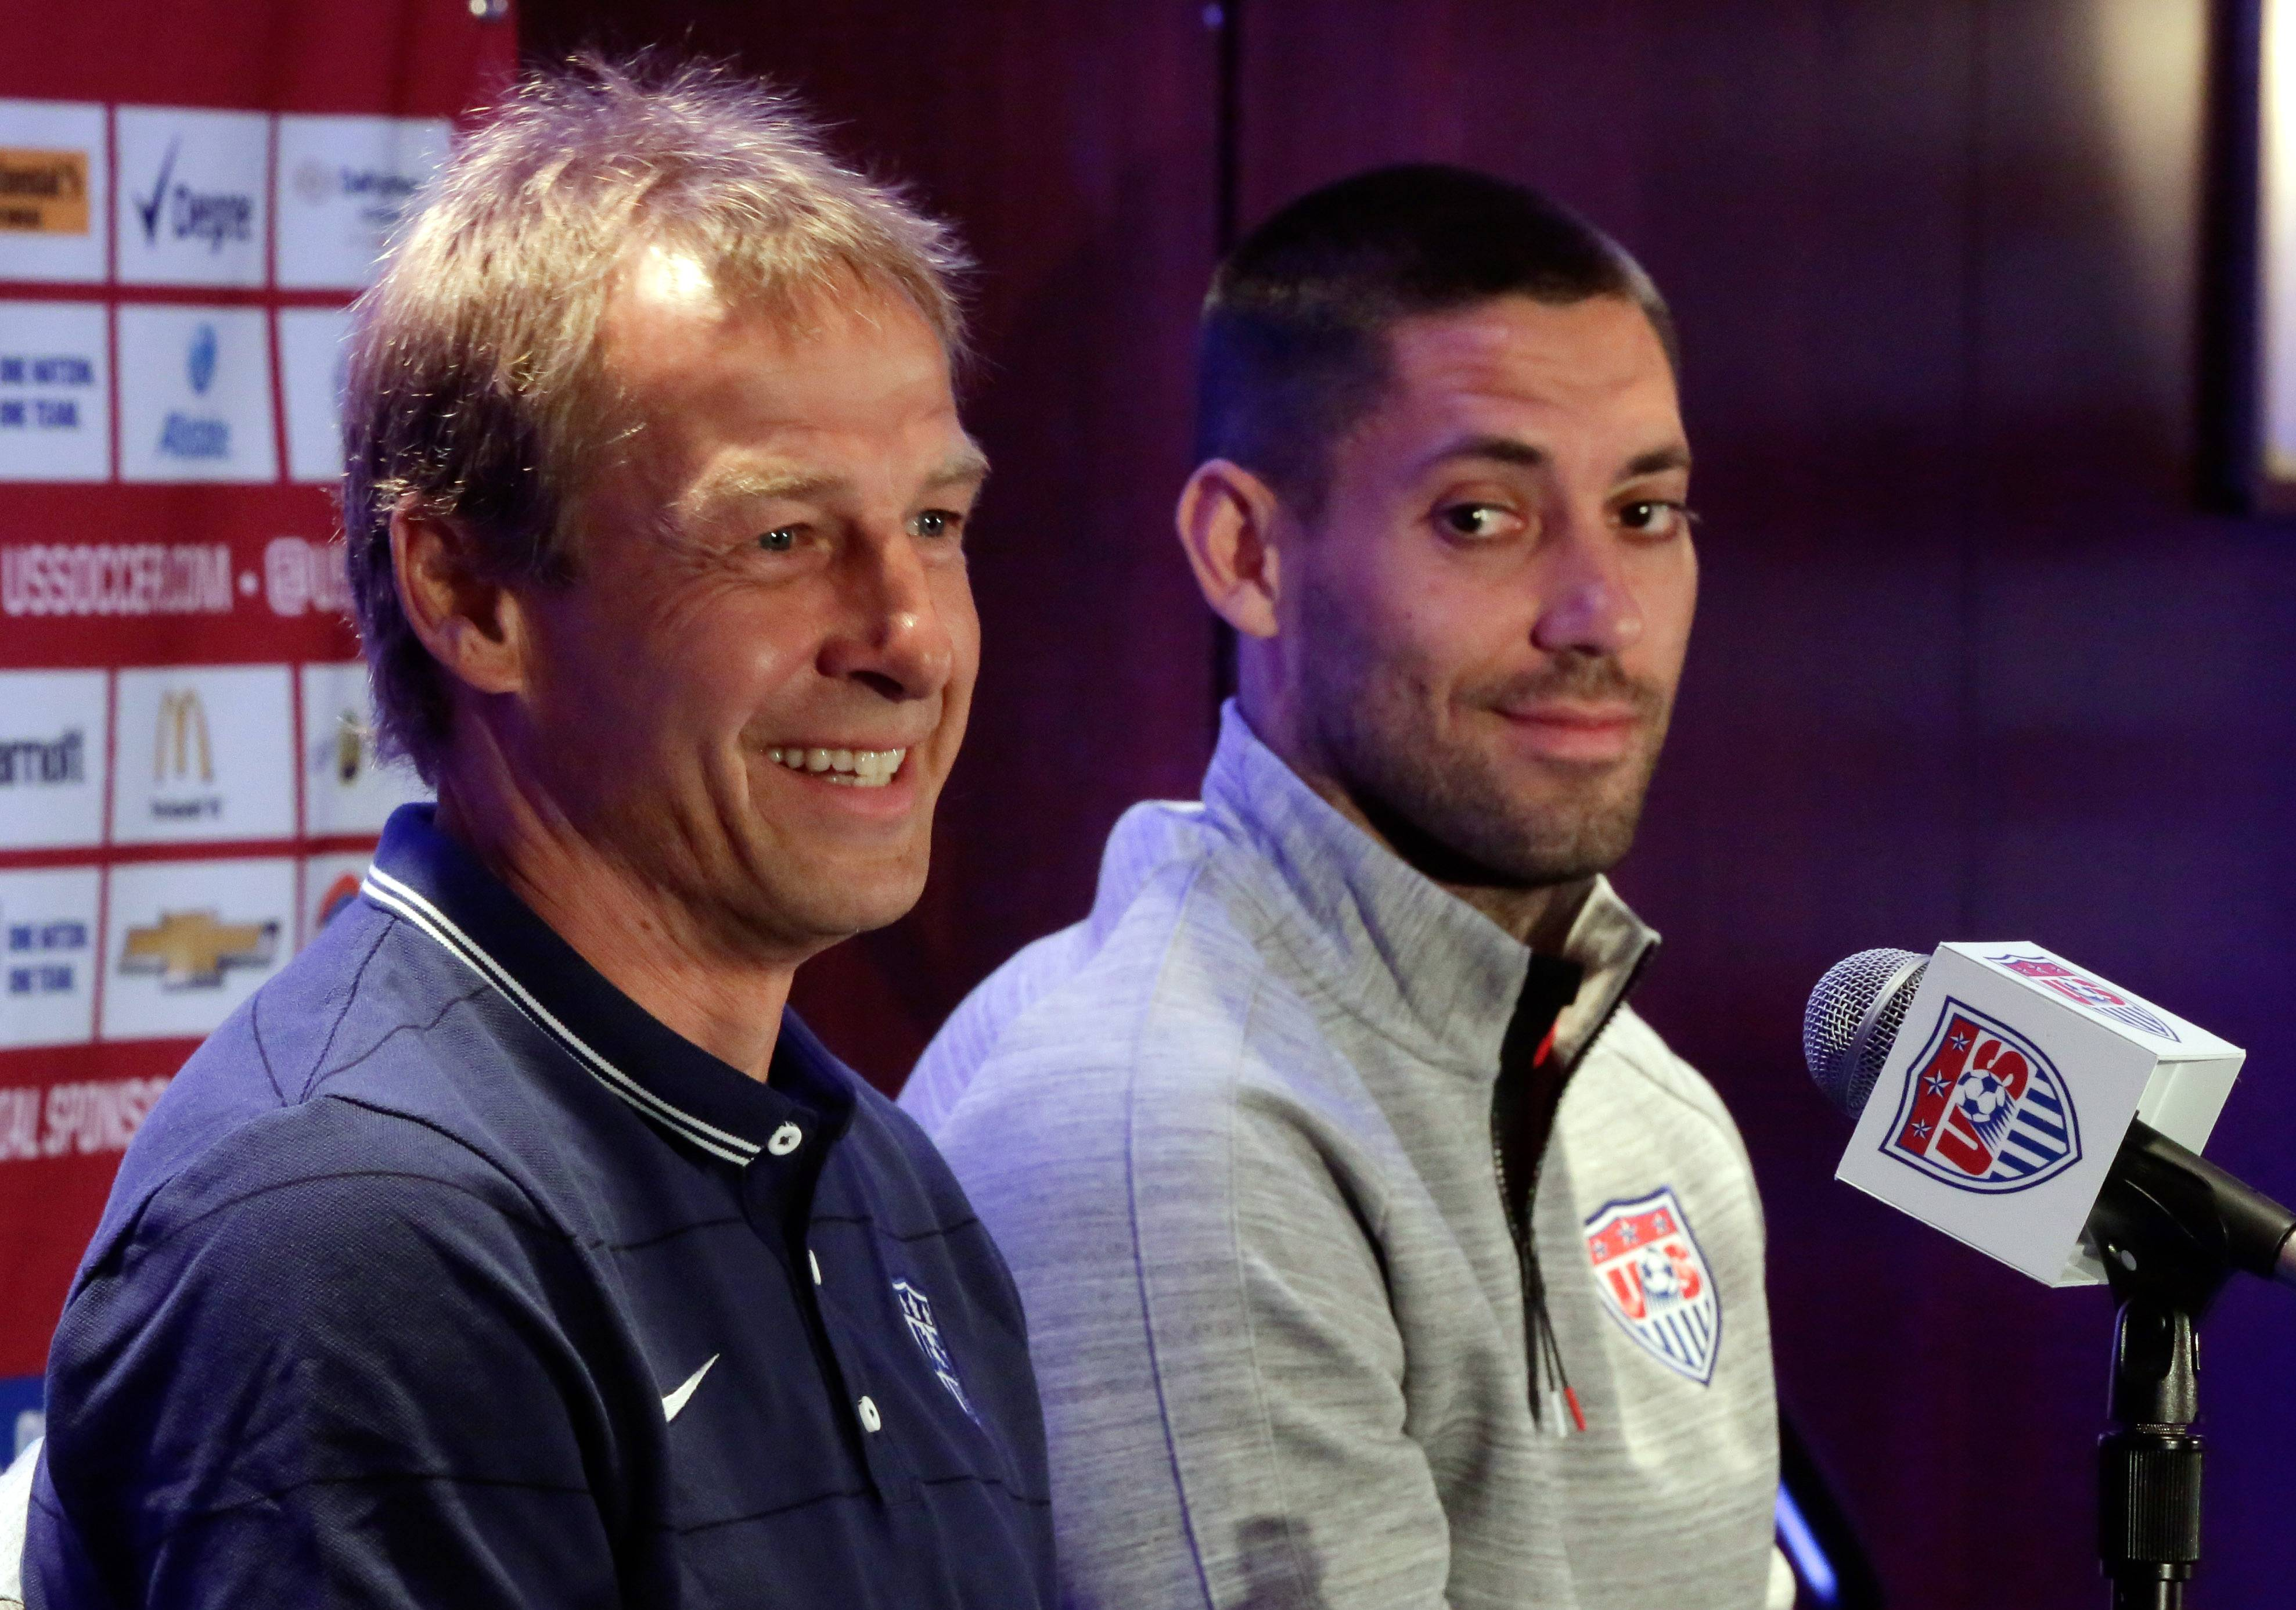 U.S. men's soccer coach Jurgen Klinsmann, left, with World Cup team captain Clint Dempsey, says it doesn't matter what formation he employs. What matters is how the team attacks and defends at the time.